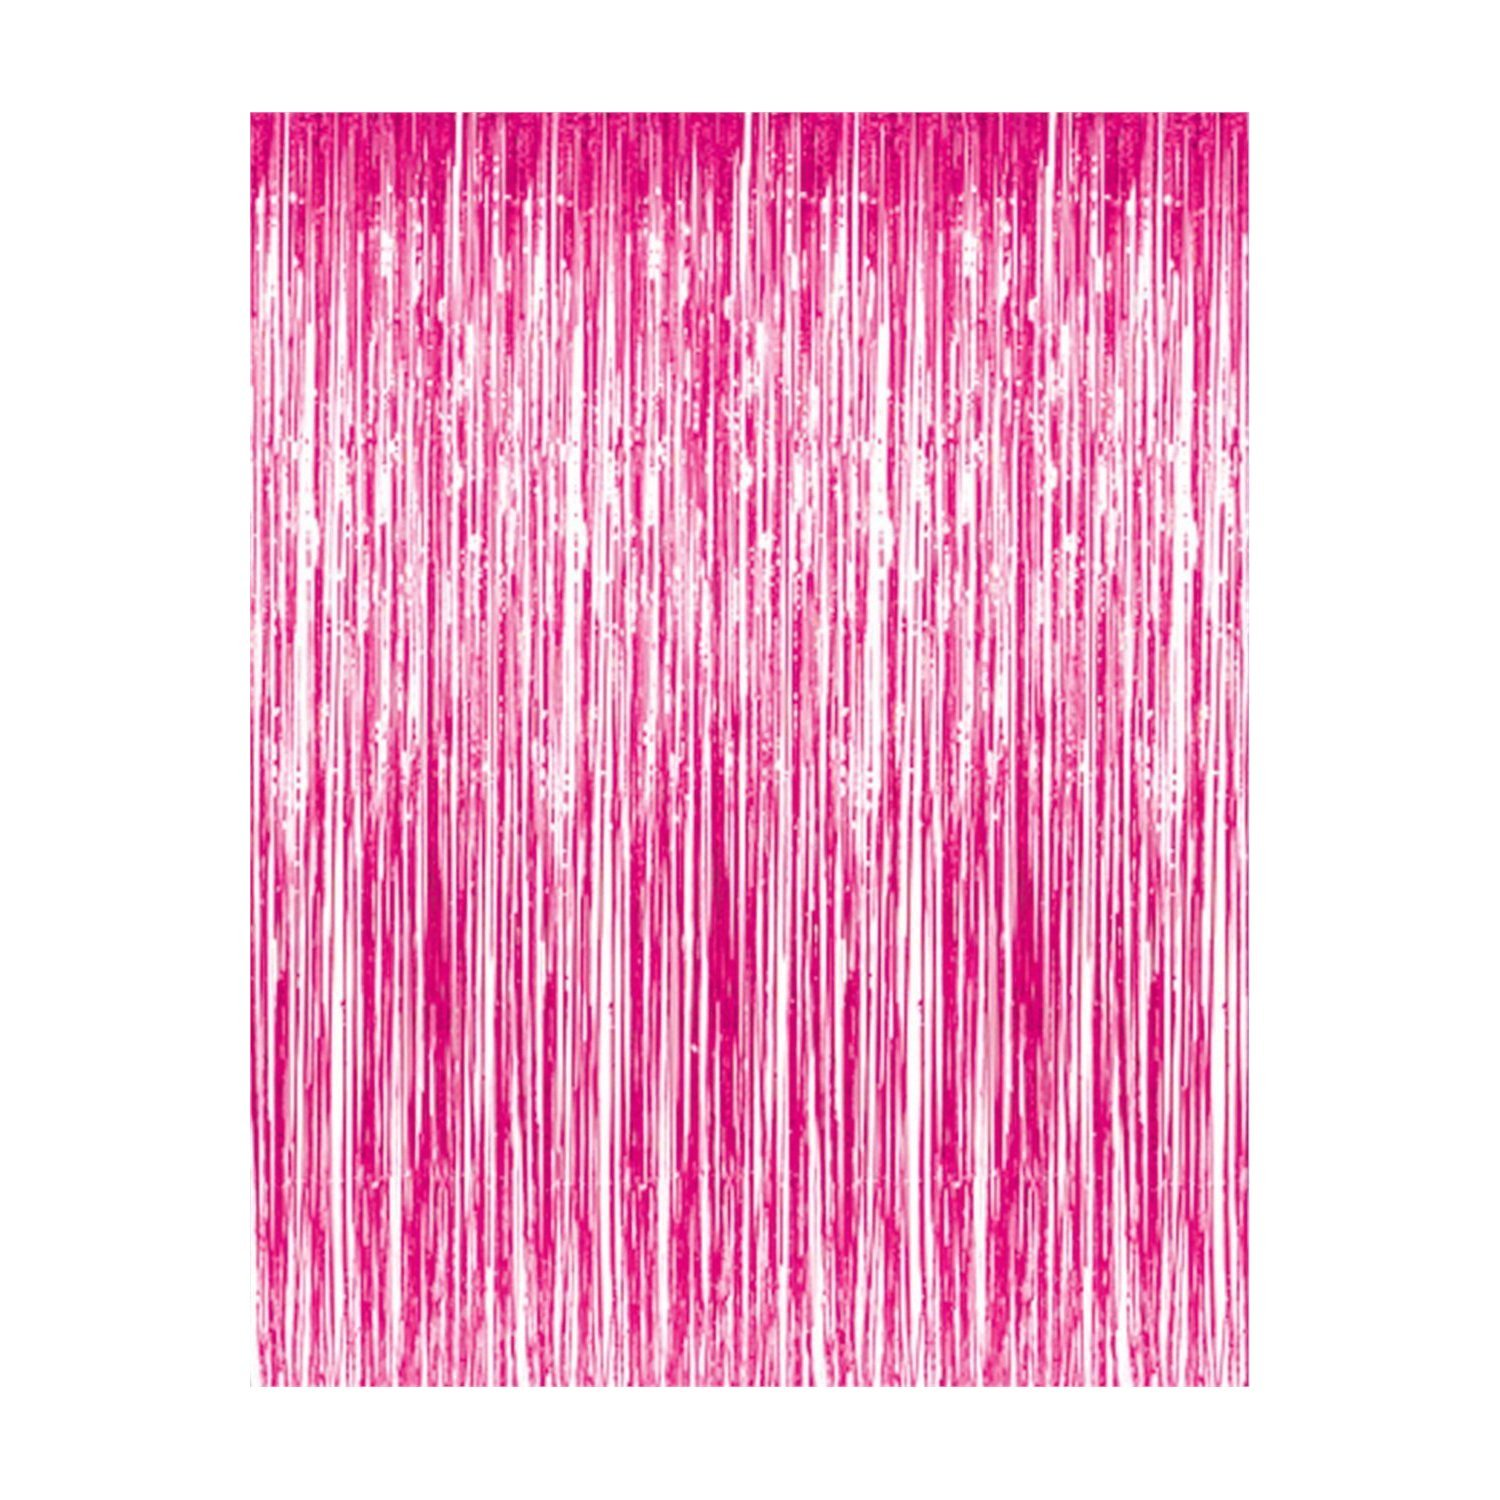 Metallic Foil Tinsel Fringe Curtains Photo Backdrop